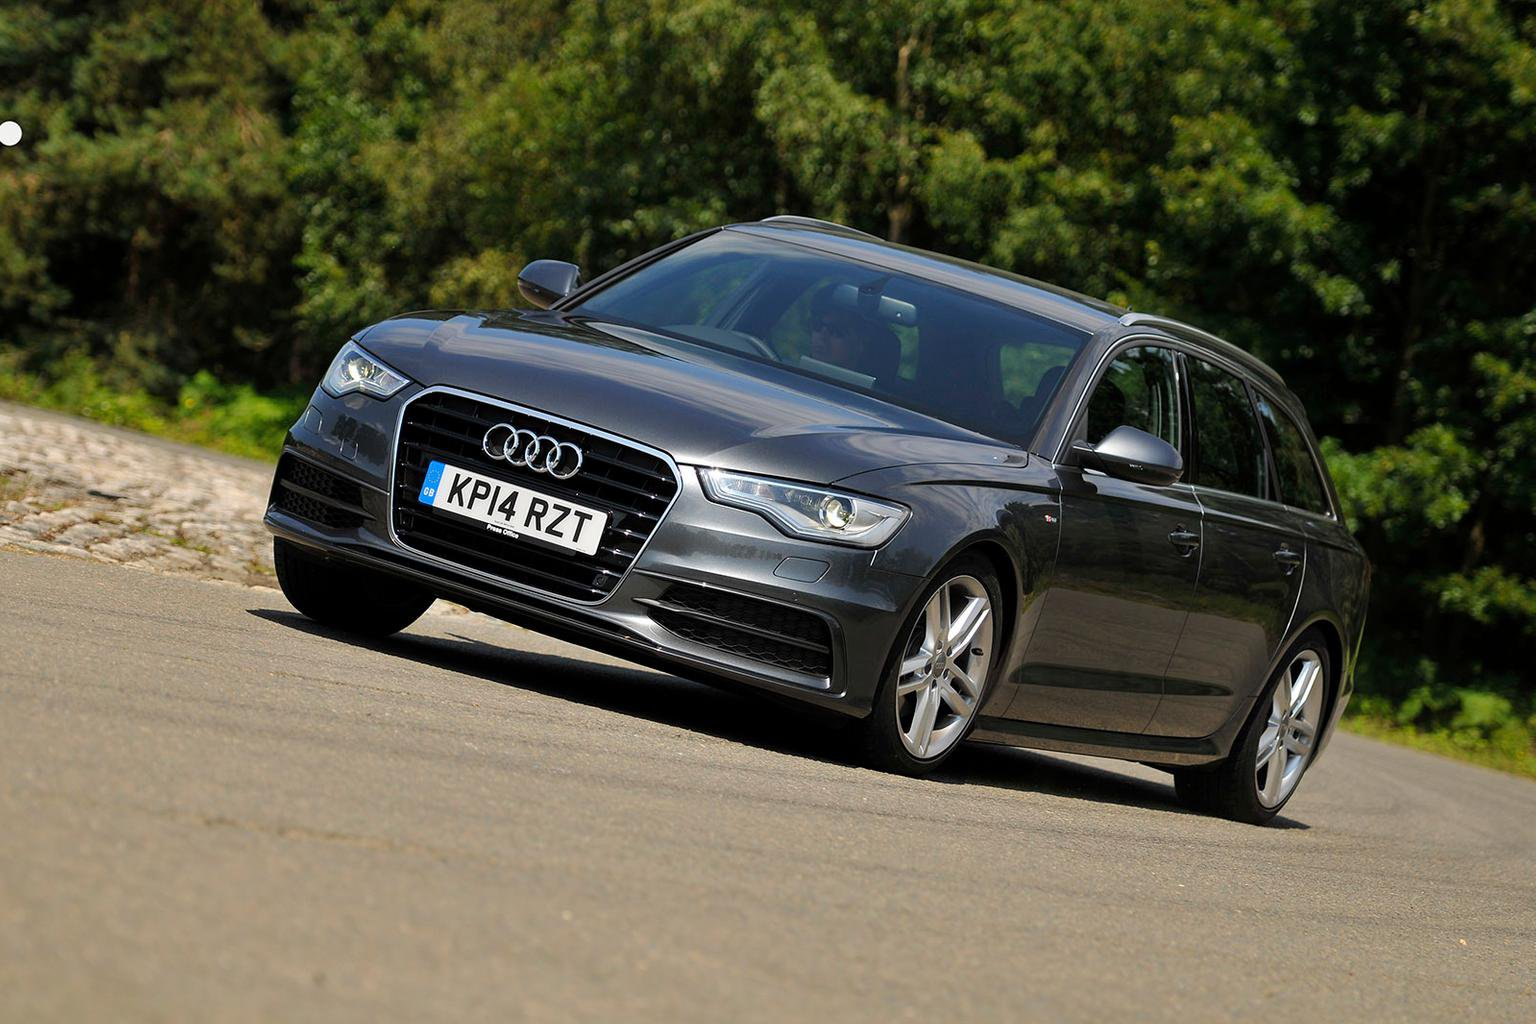 2014 Audi A6 Avant Ultra review